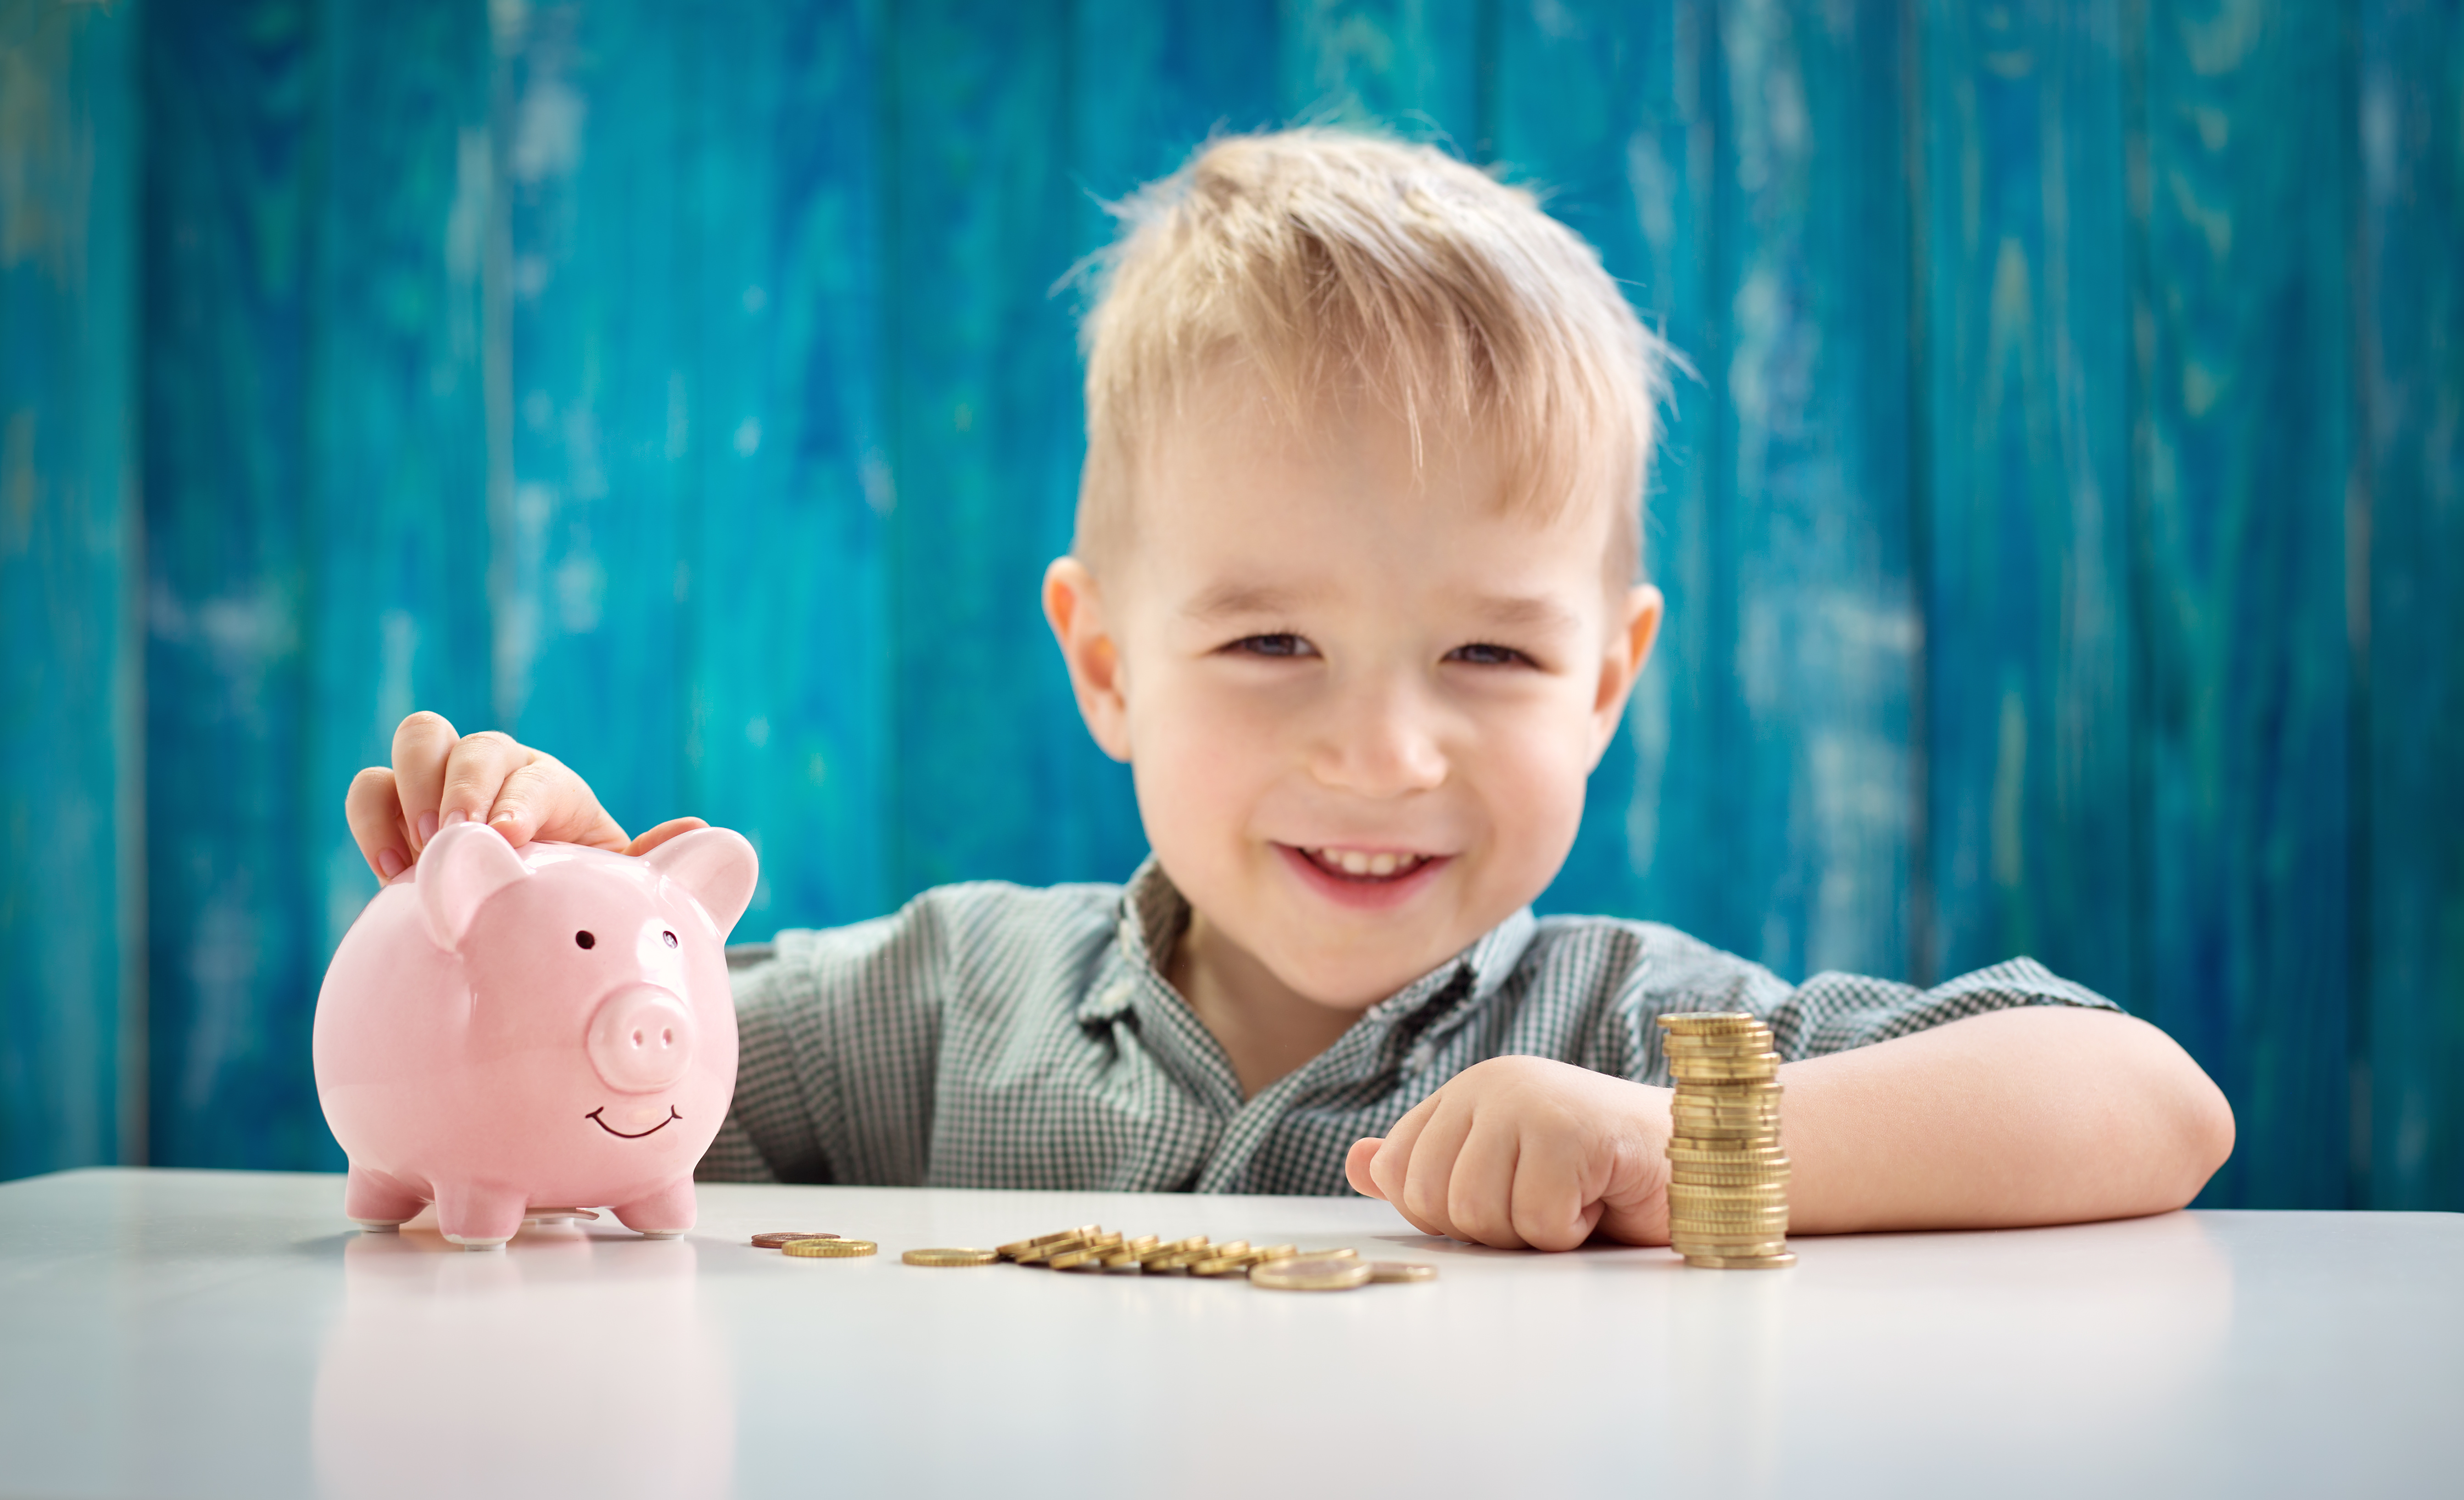 Boy with piggy bank and coins